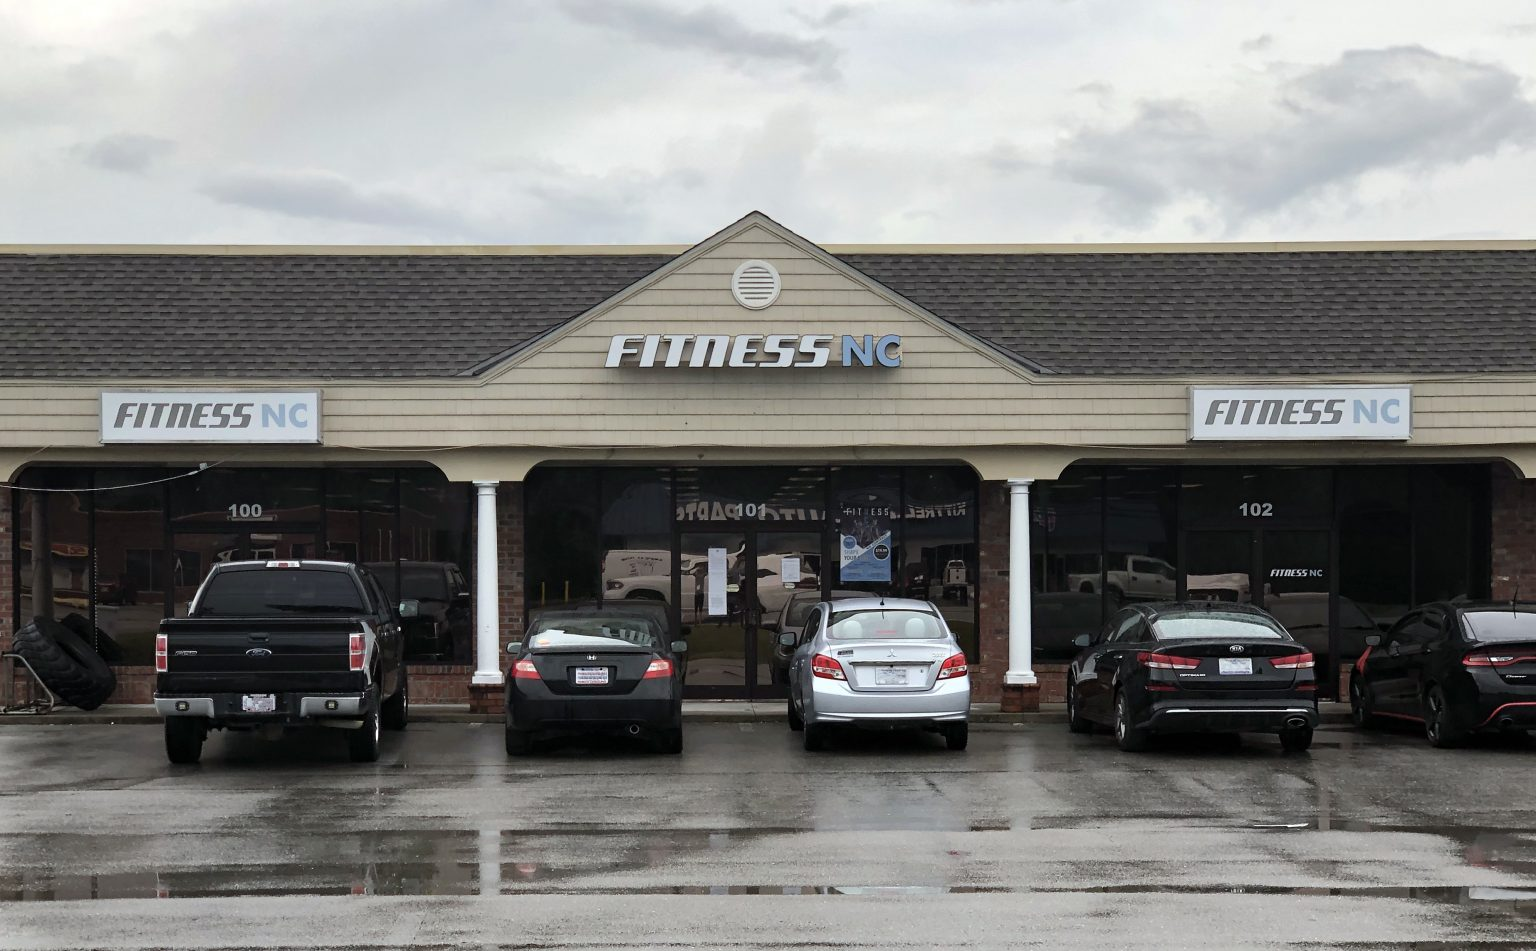 Gym And Fitness Center In Havelock North Carolina Fitness Nc